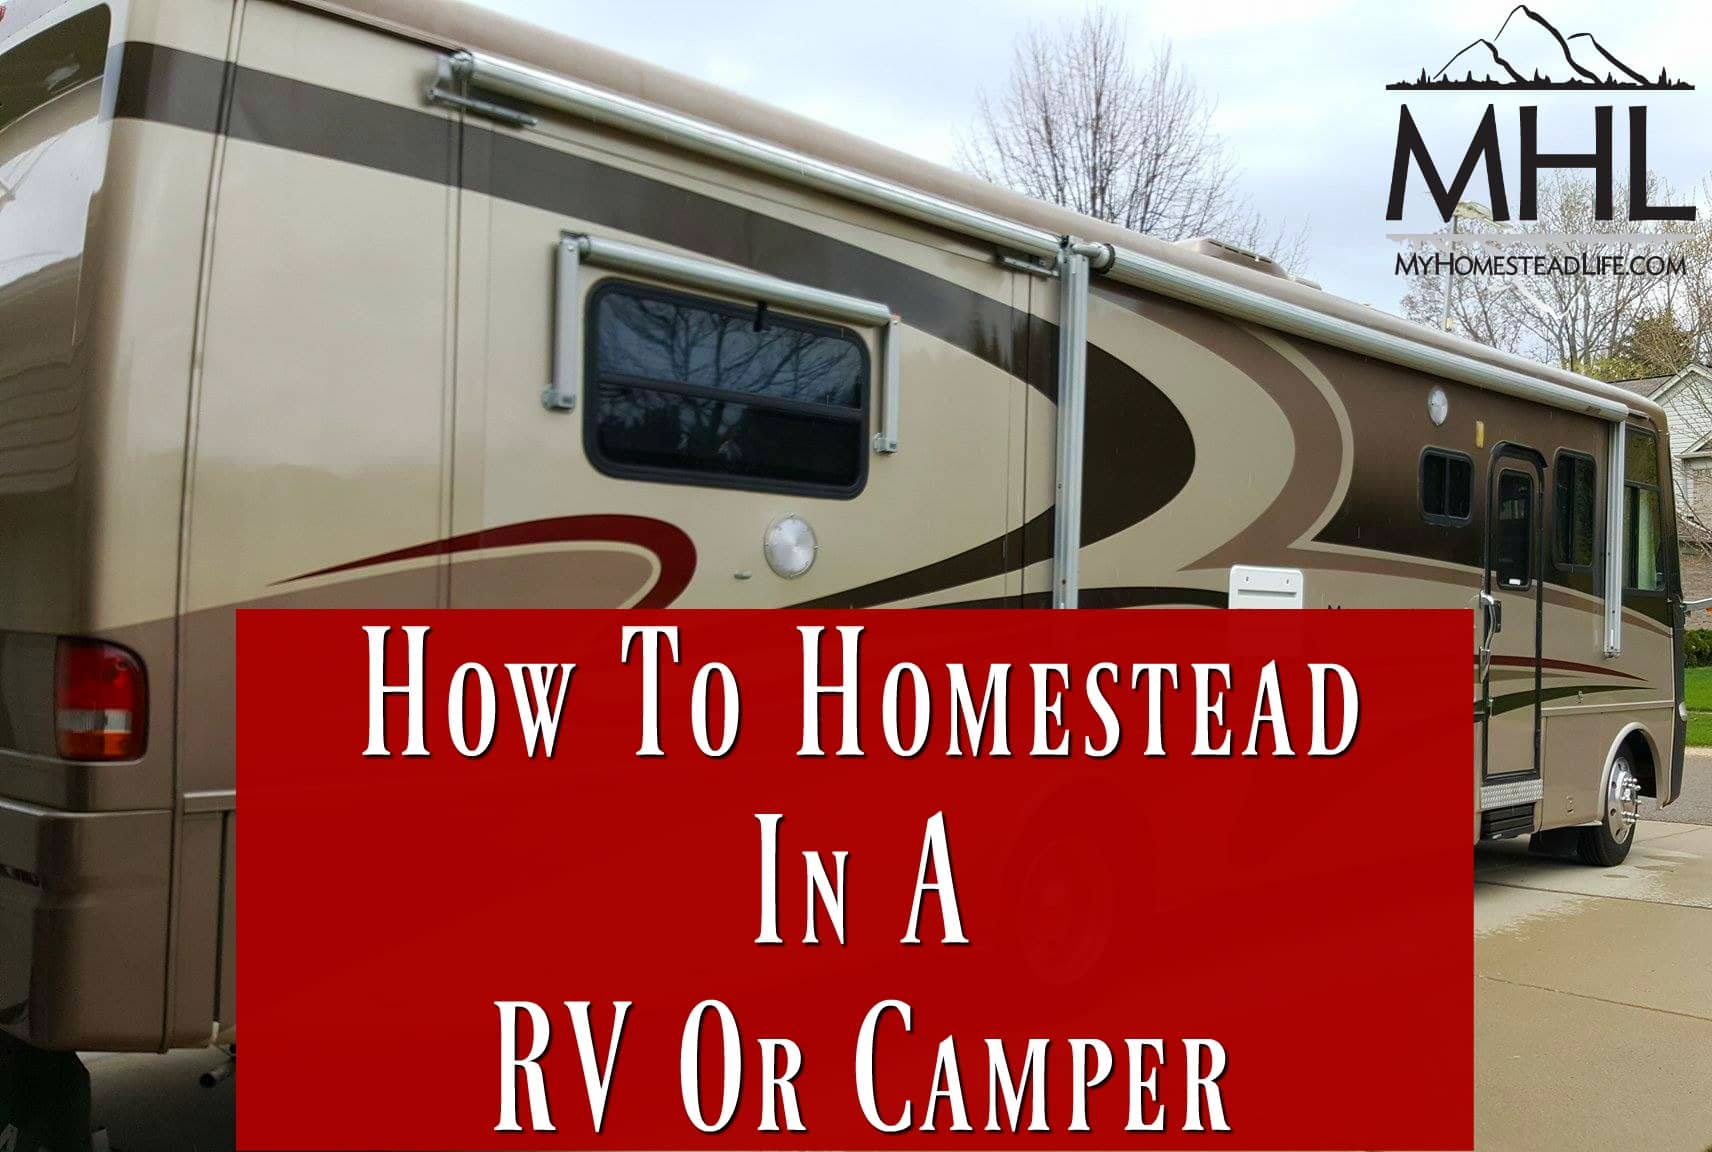 How to Homestead in a RV or Camper